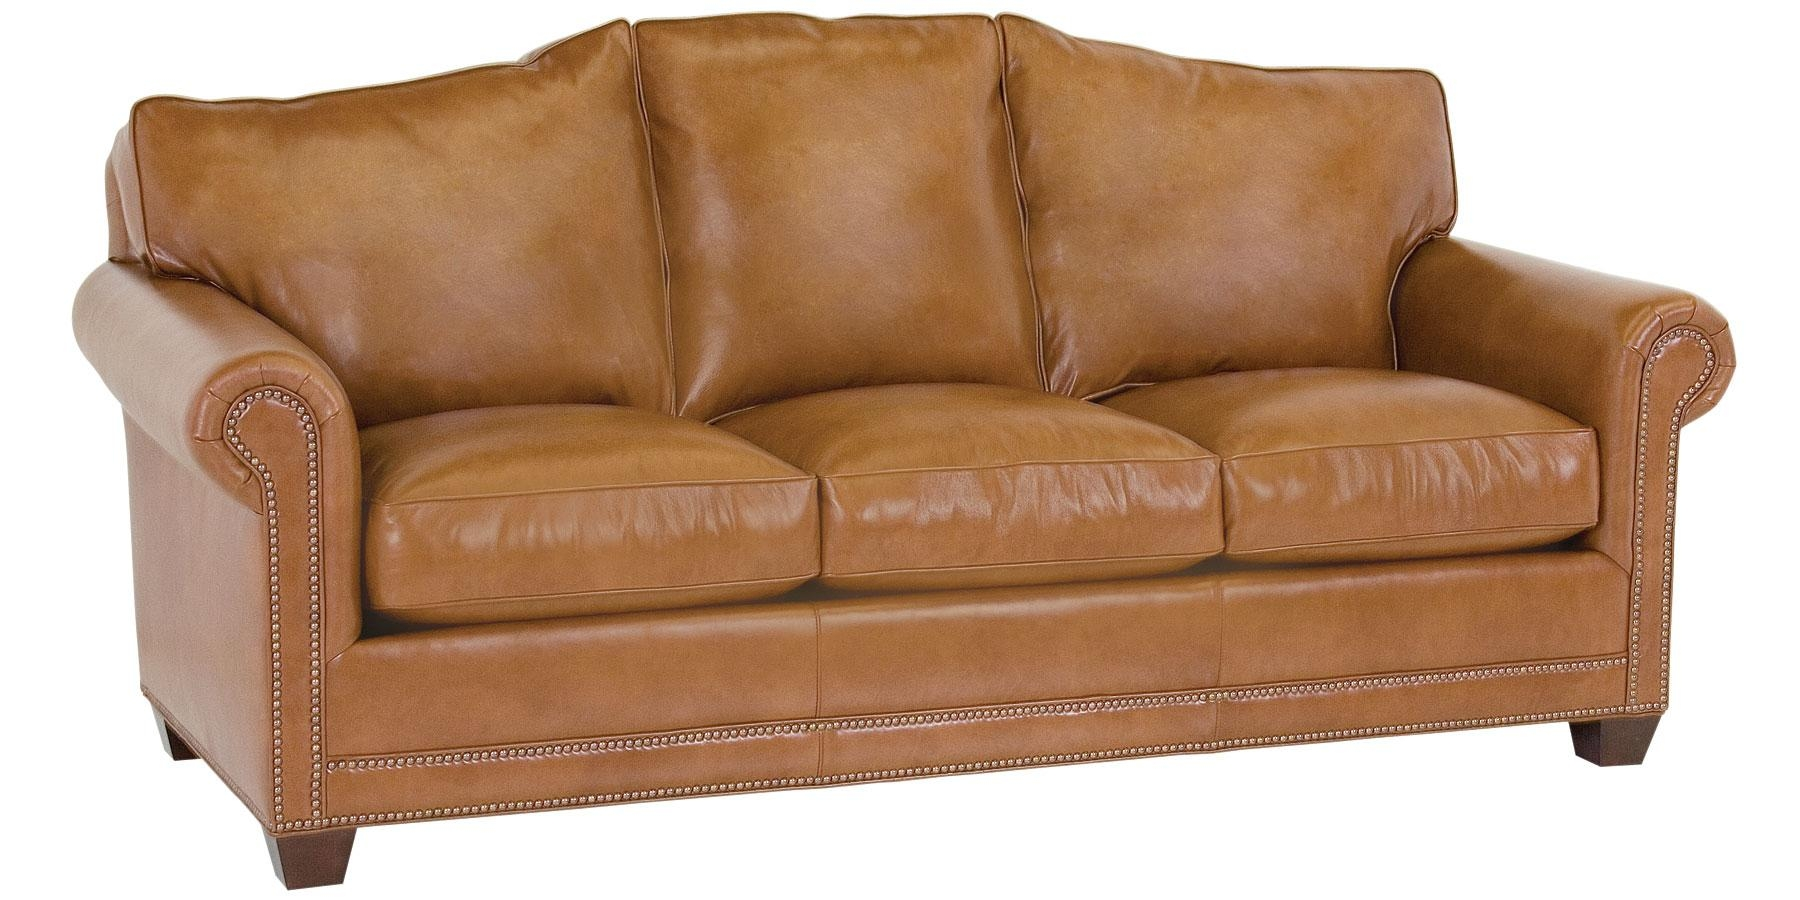 Camel Color Leather Sofa With Ideas Gallery 19338 | Kengire With Regard To Camel Colored Leather Sofas (Image 4 of 20)